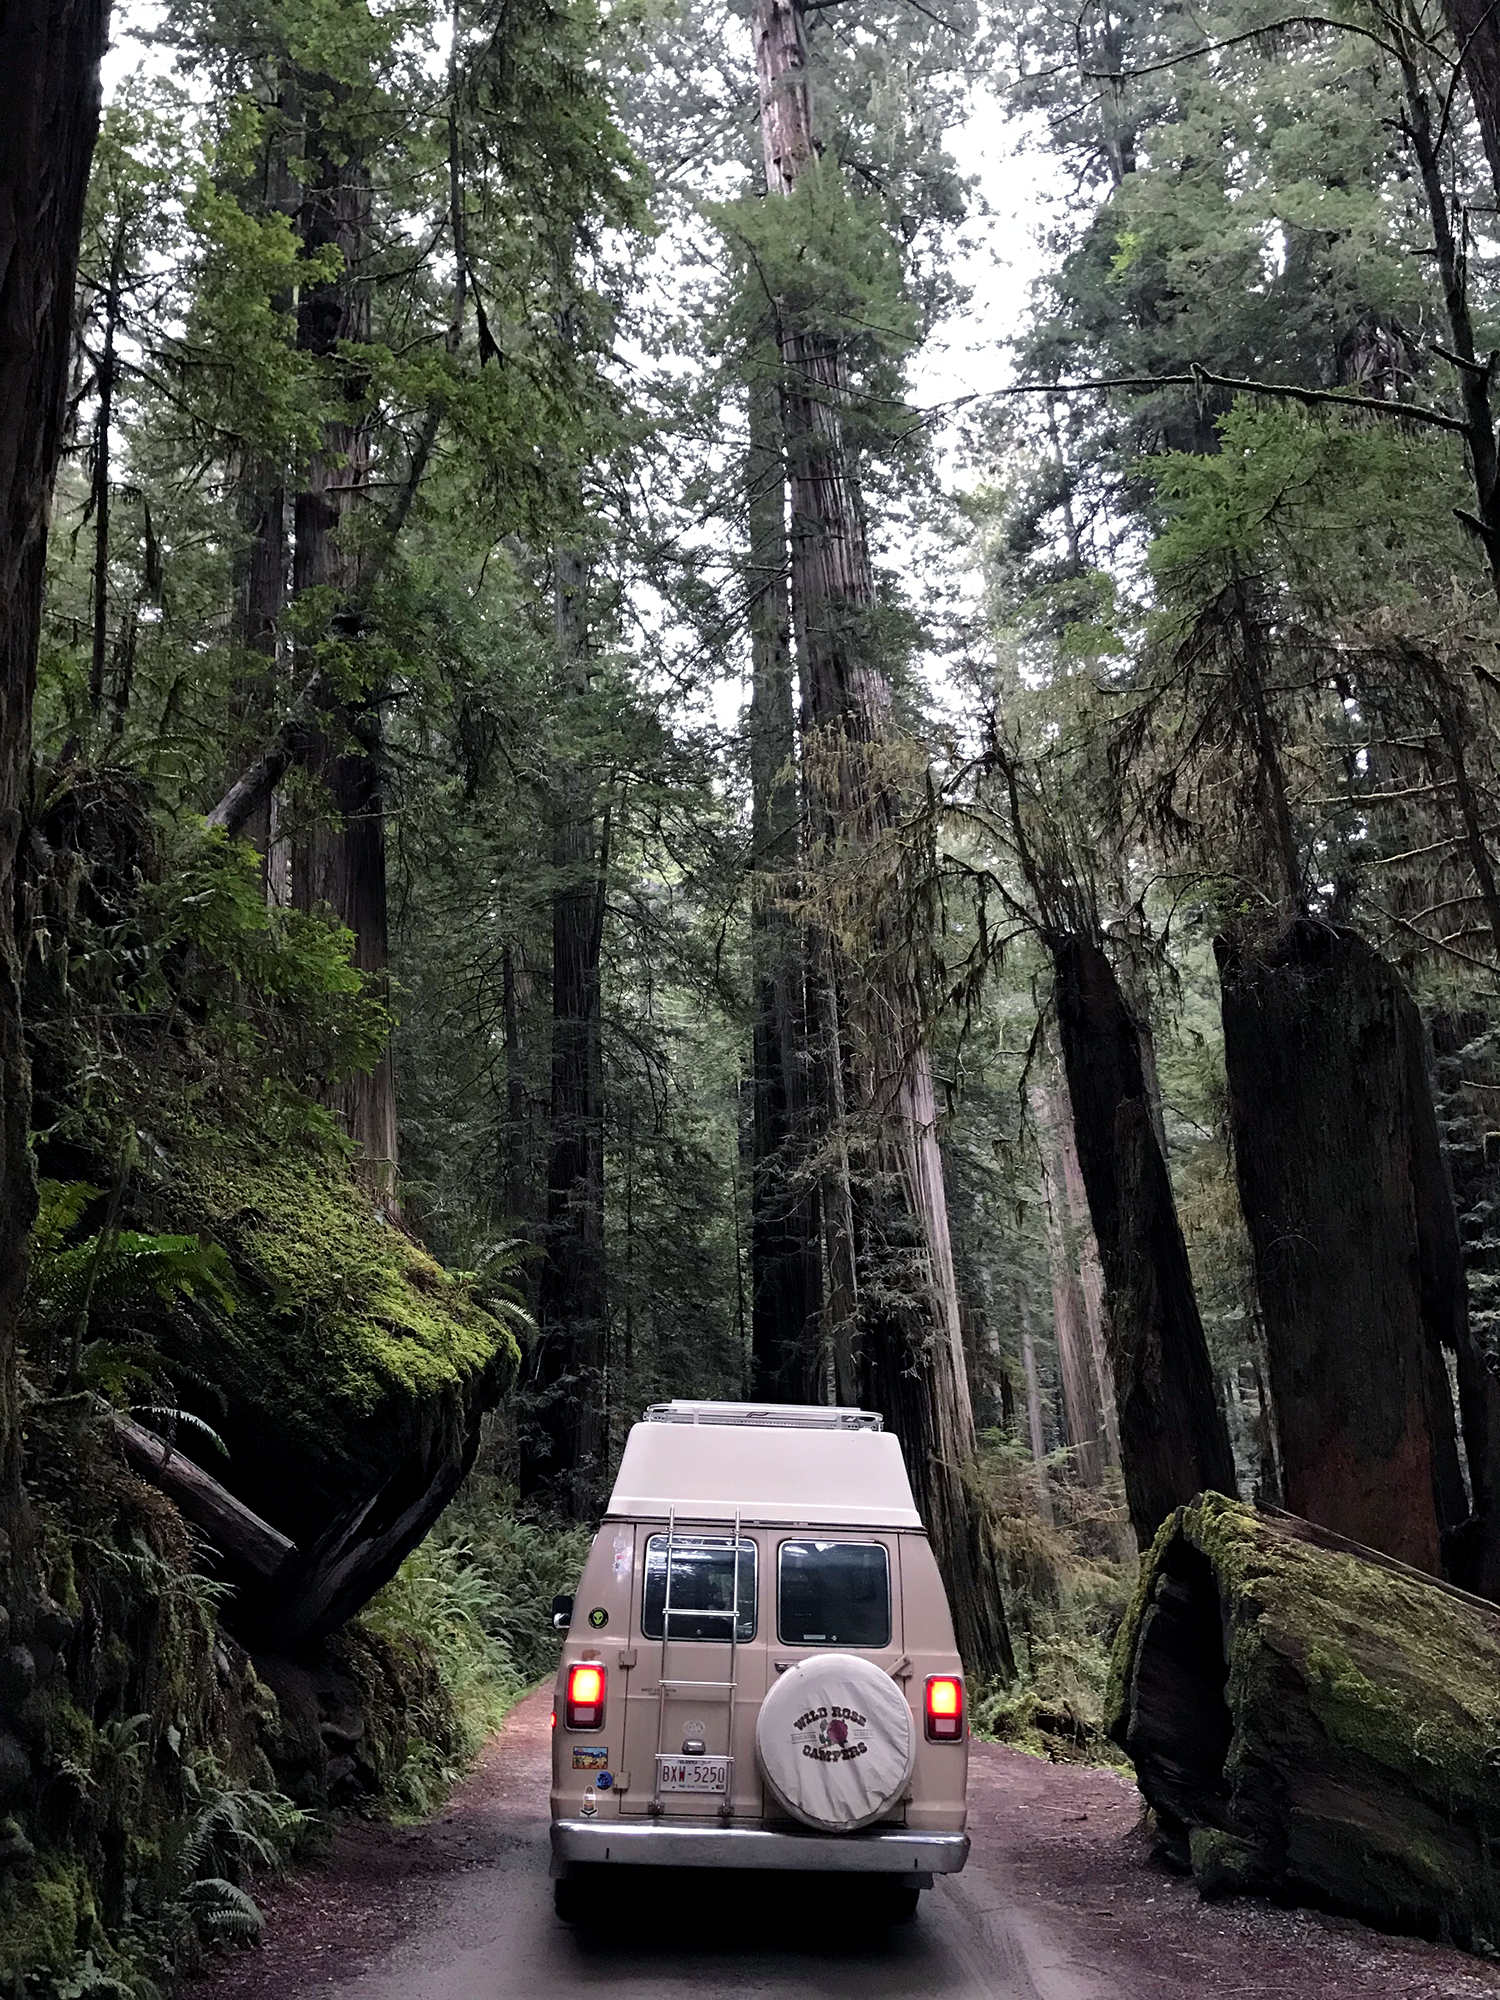 Generic Van Life - Northern California Redwoods